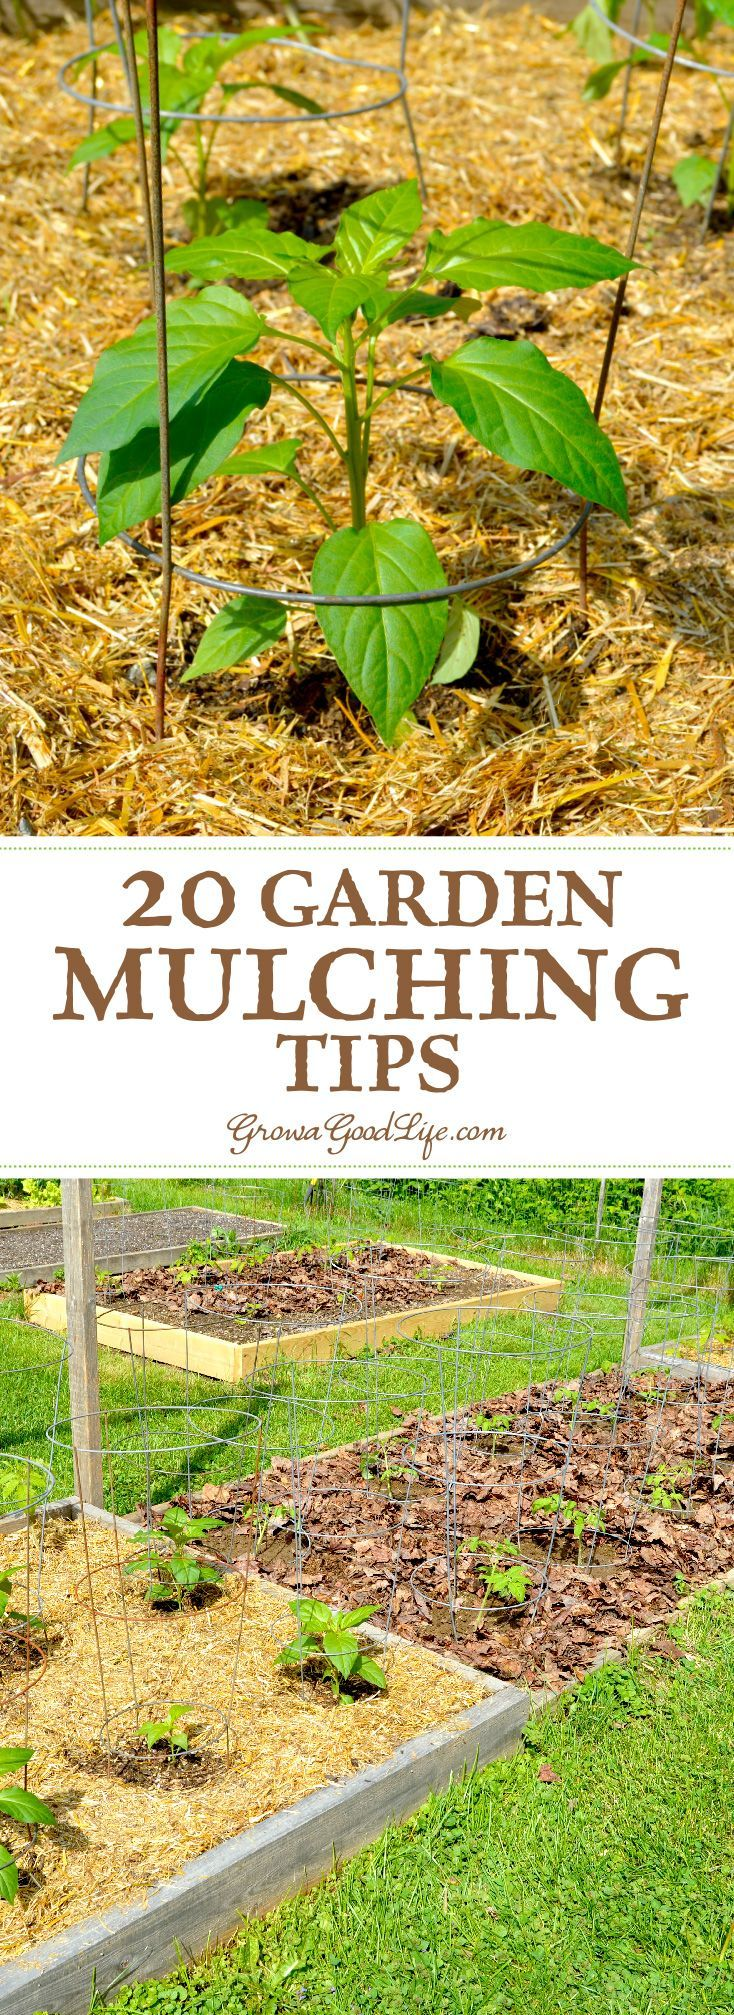 Best 25+ Garden Mulch Ideas On Pinterest | Gardening Direct, Benefits Of  Gardening And Growing Vegetables